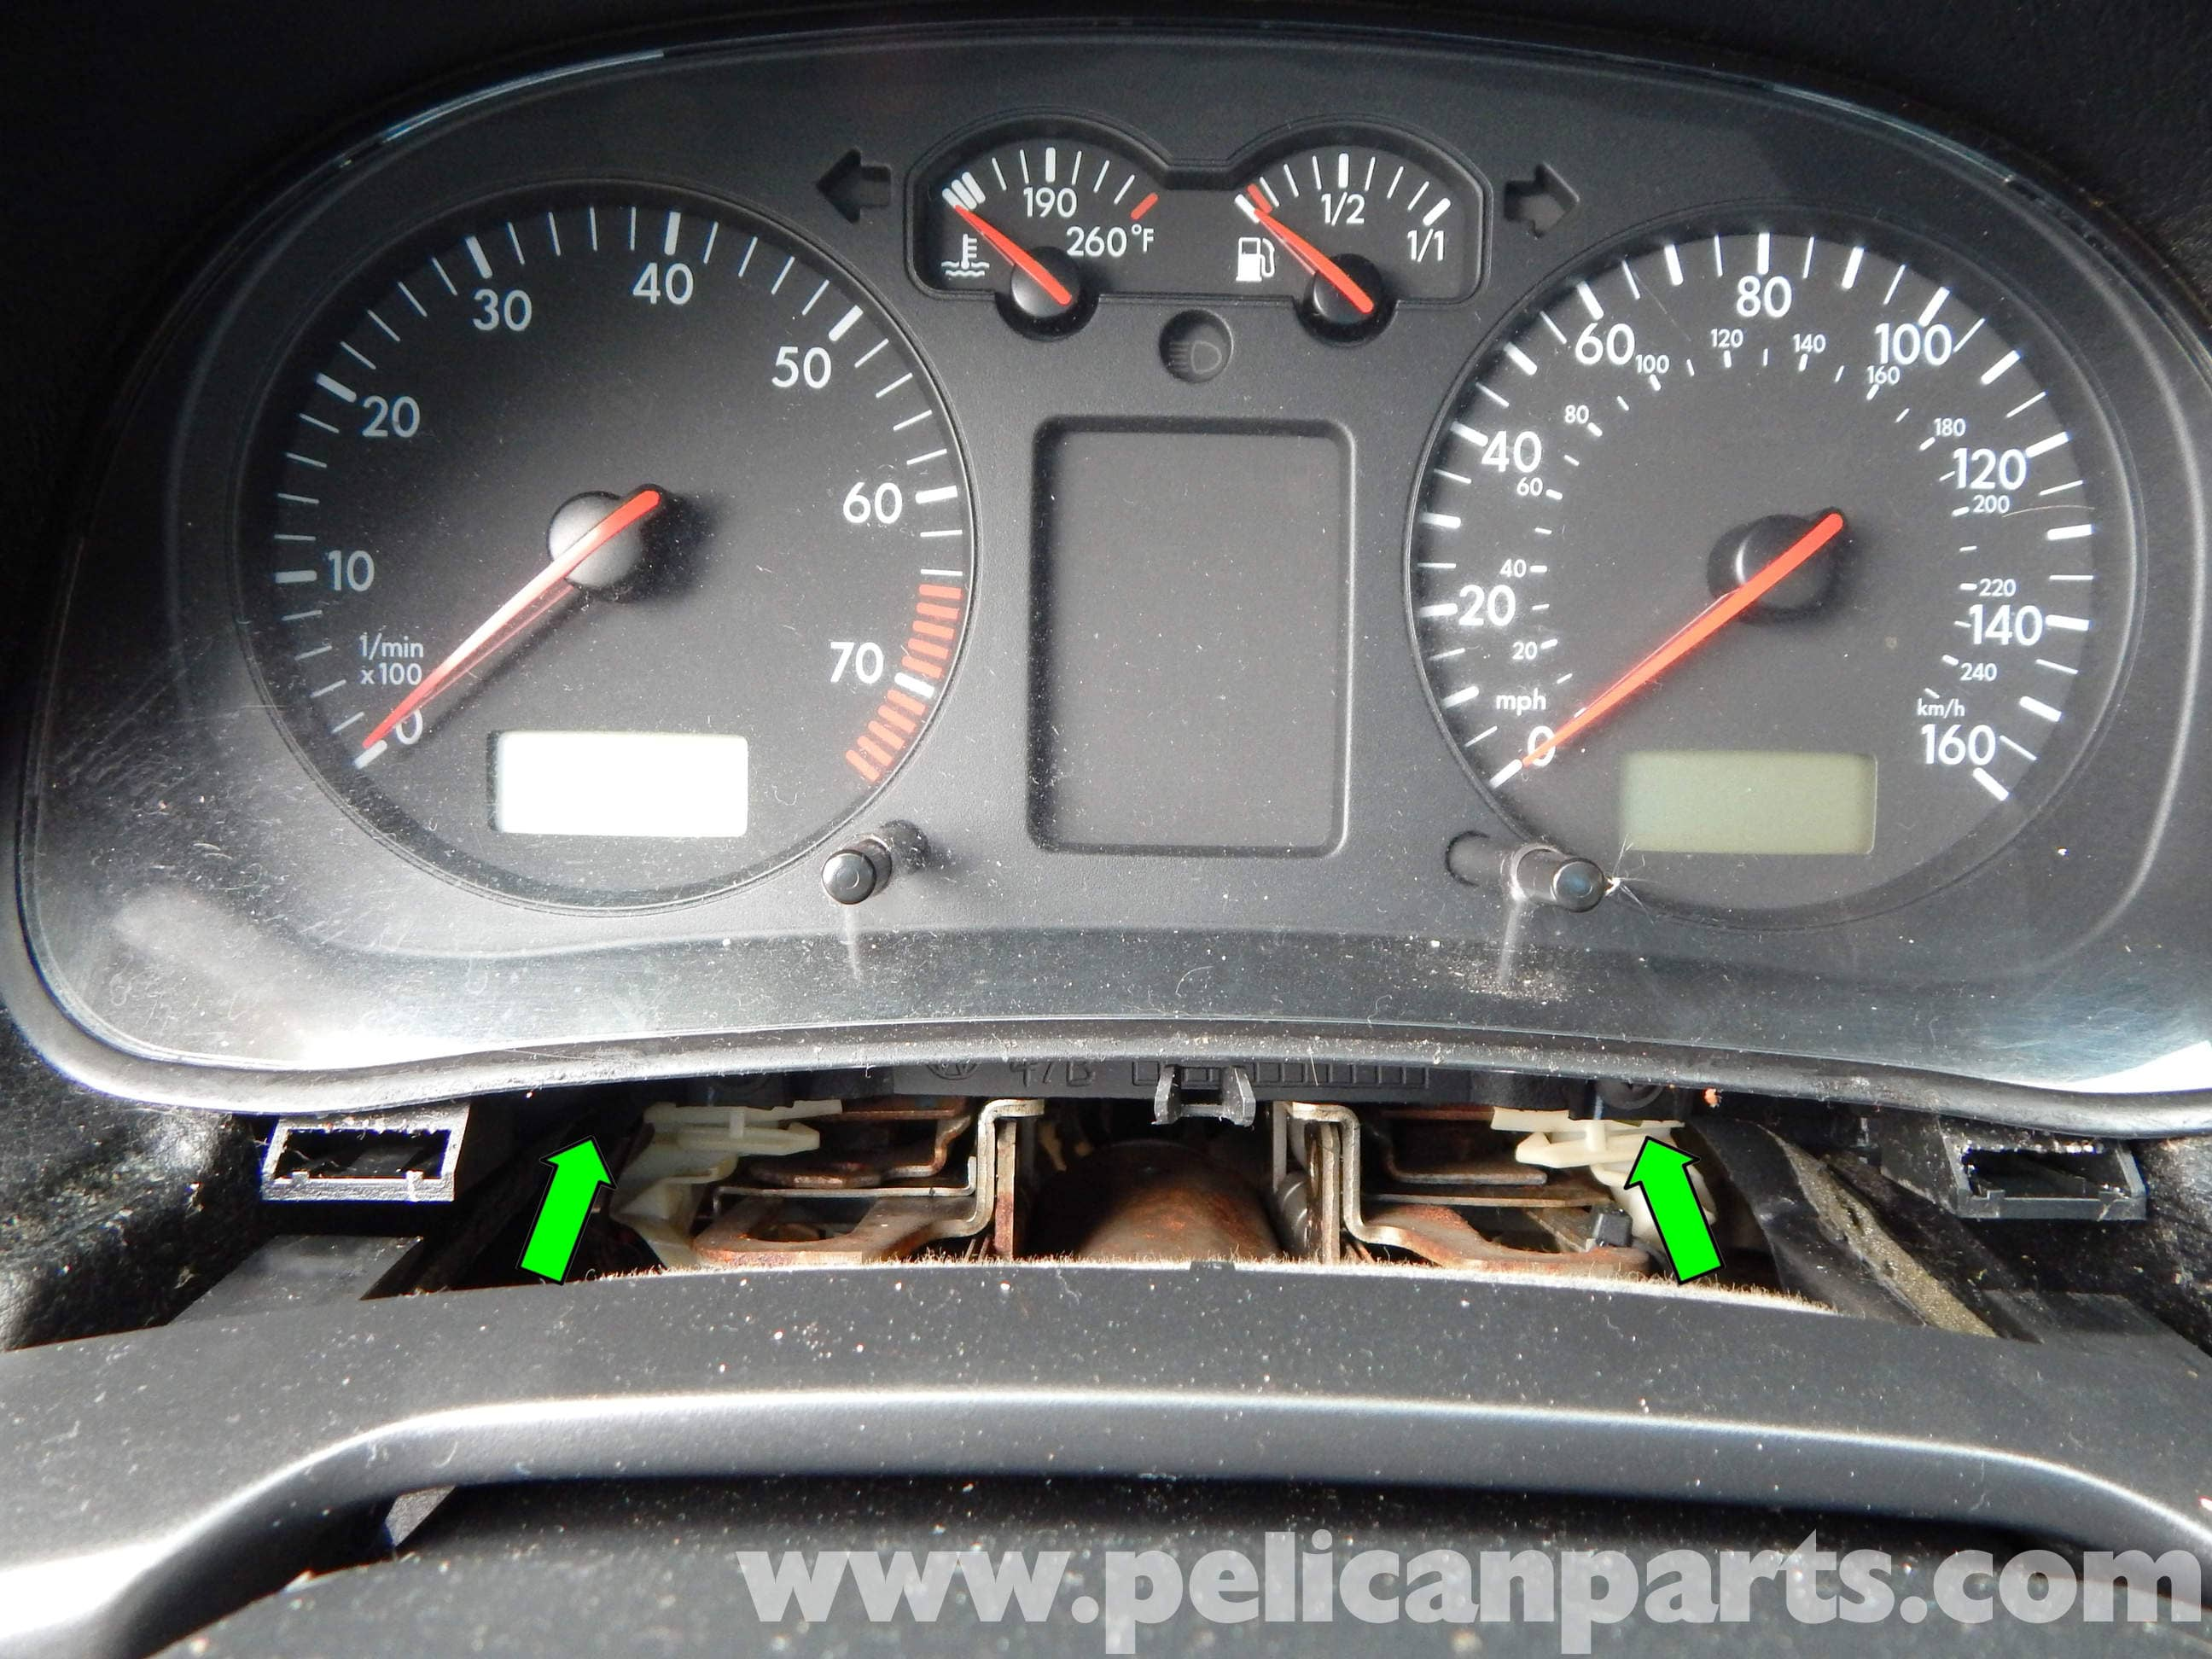 Volkswagen jetta mk4 instrument cluster removal jetta mk4 20l large image extra large image carefully maneuver the instrument cluster biocorpaavc Gallery